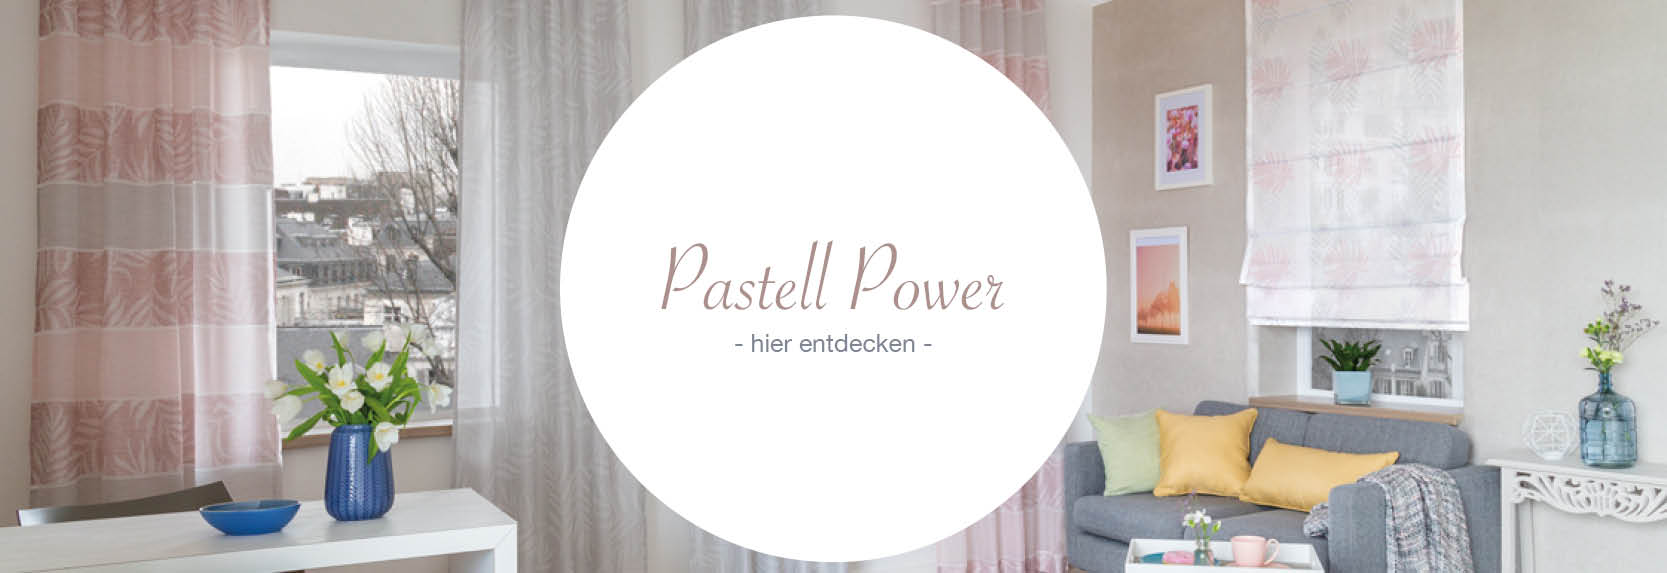 Indes Kollektion Pastell Power